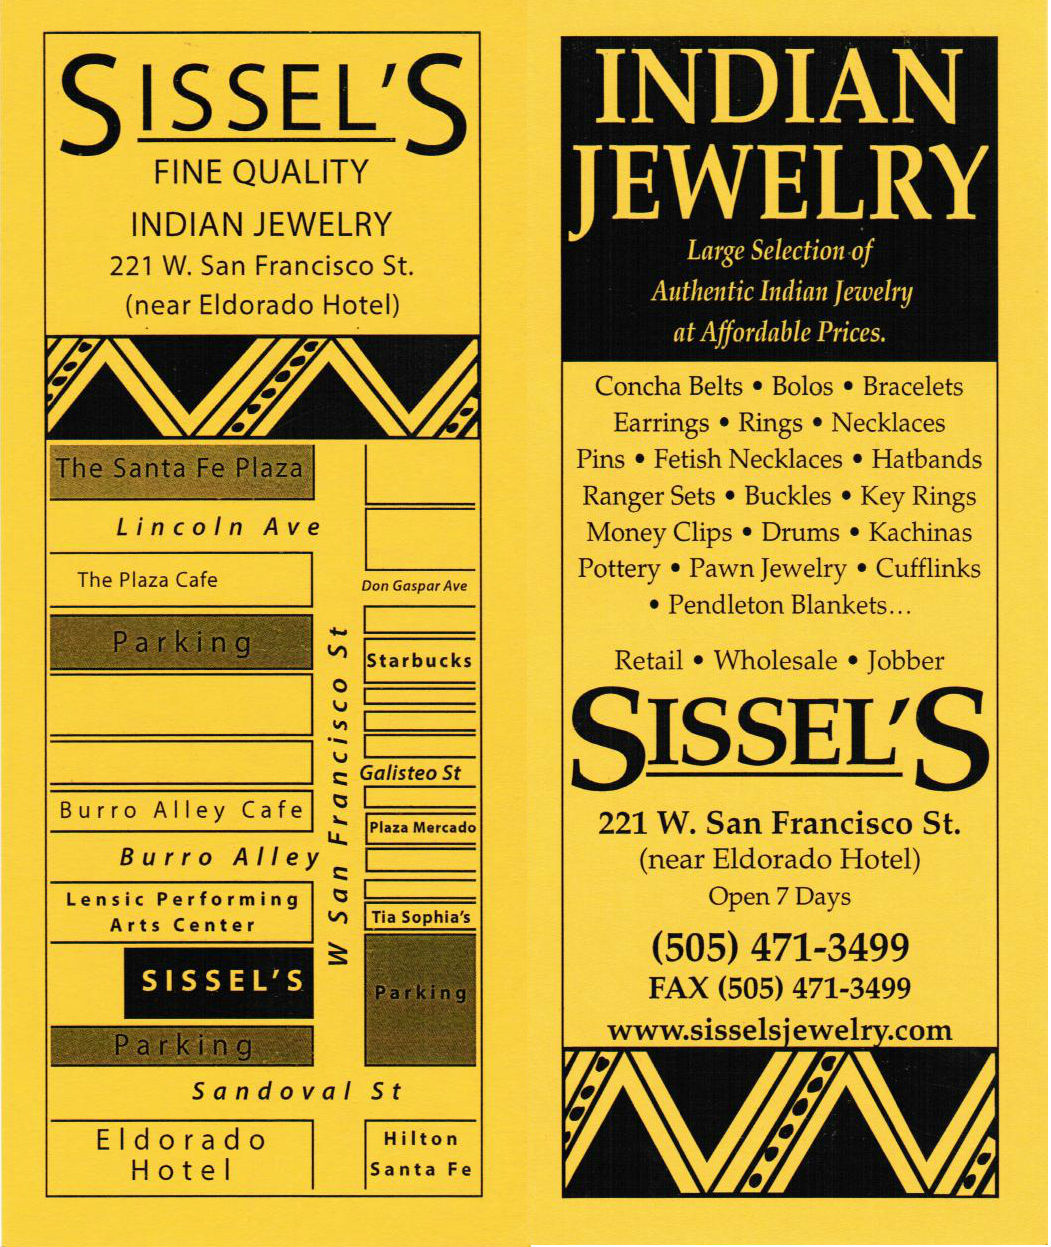 Sissel's Indian Jewelry